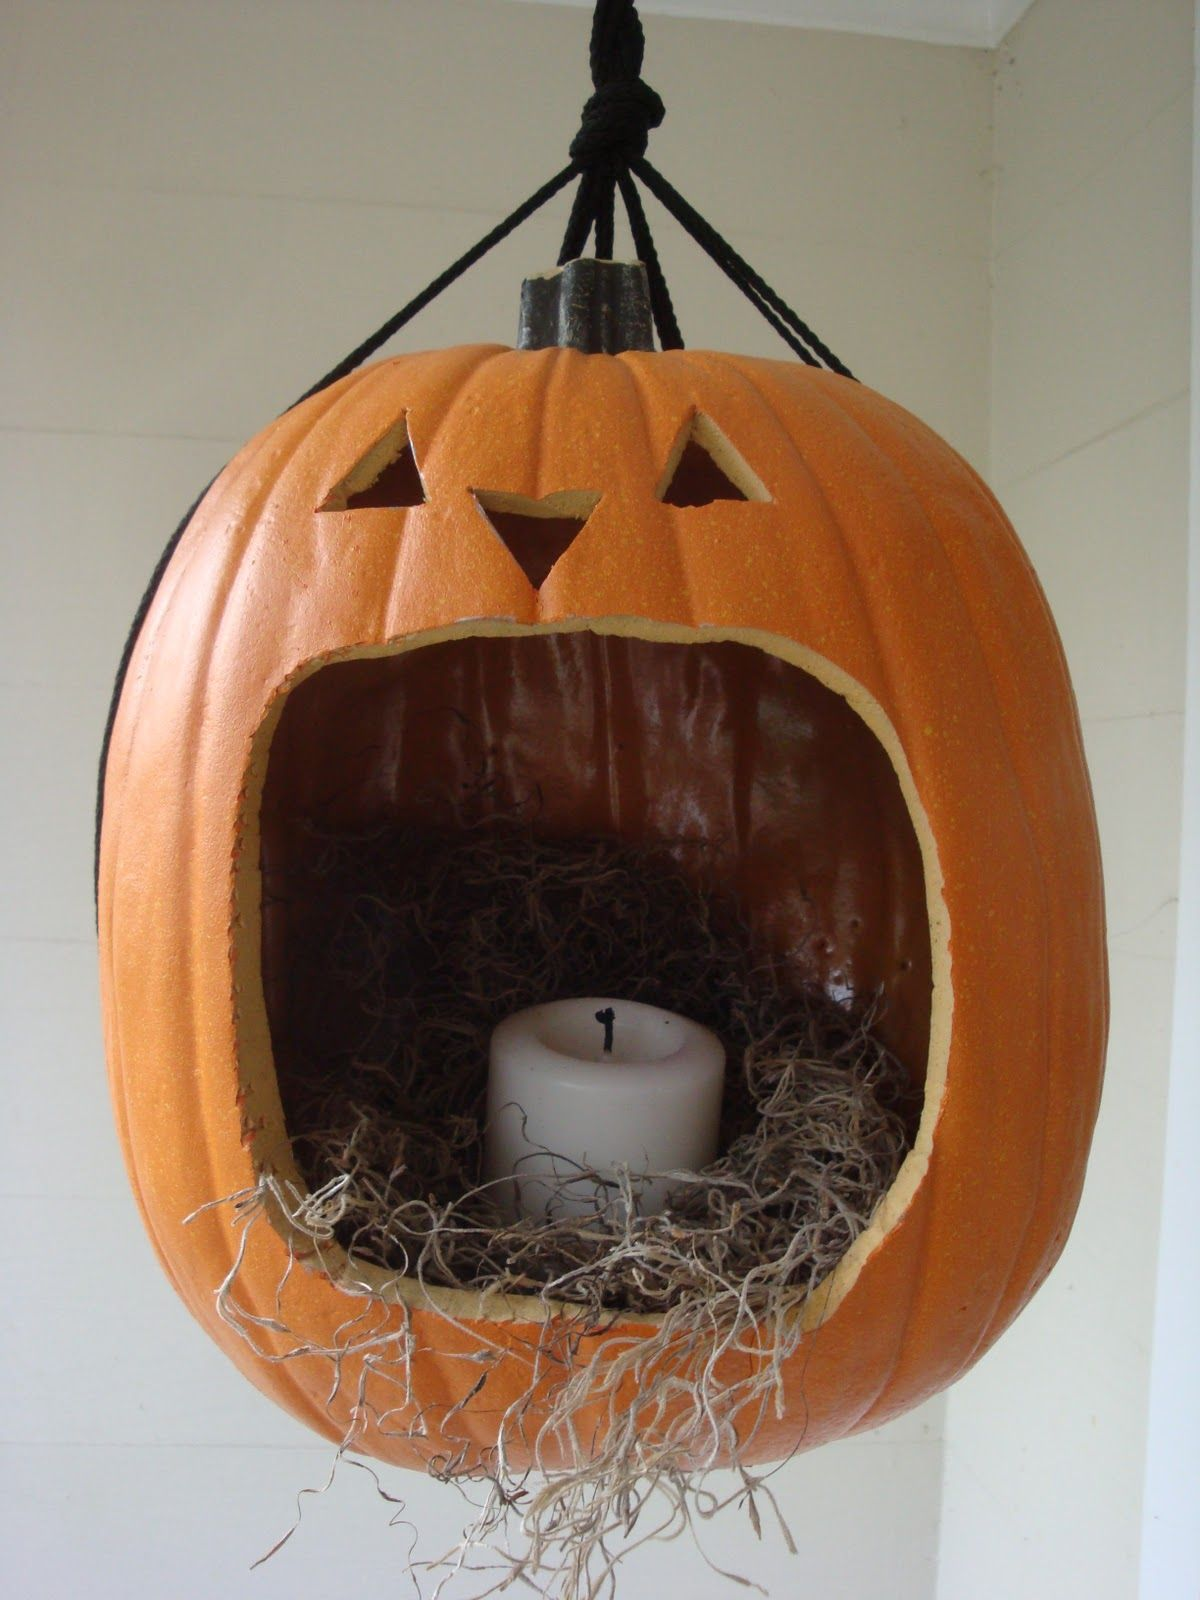 40 cool pumpkin carving designs creative ideas for jack o u0027 lanterns